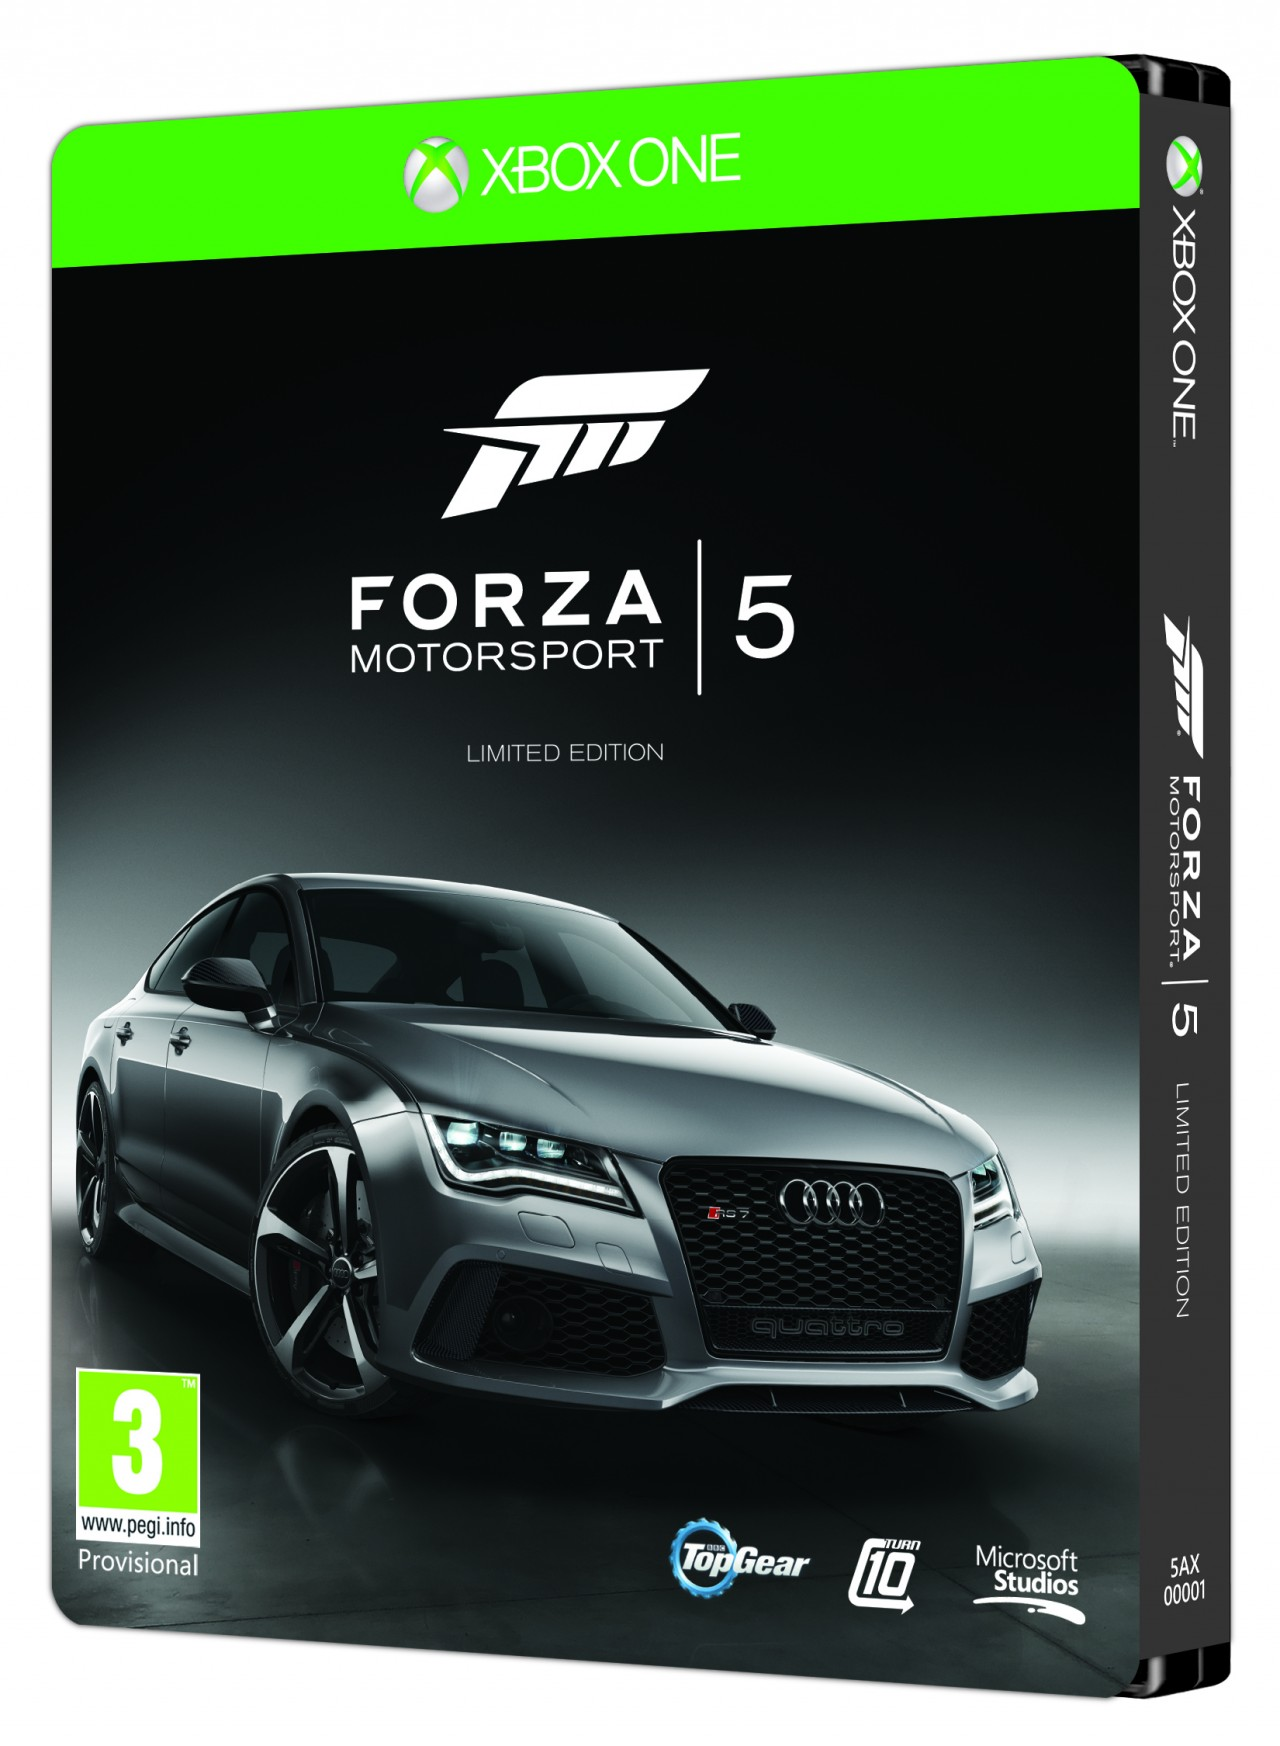 xbox one forza 5 wheel xbox free engine image for user manual download. Black Bedroom Furniture Sets. Home Design Ideas